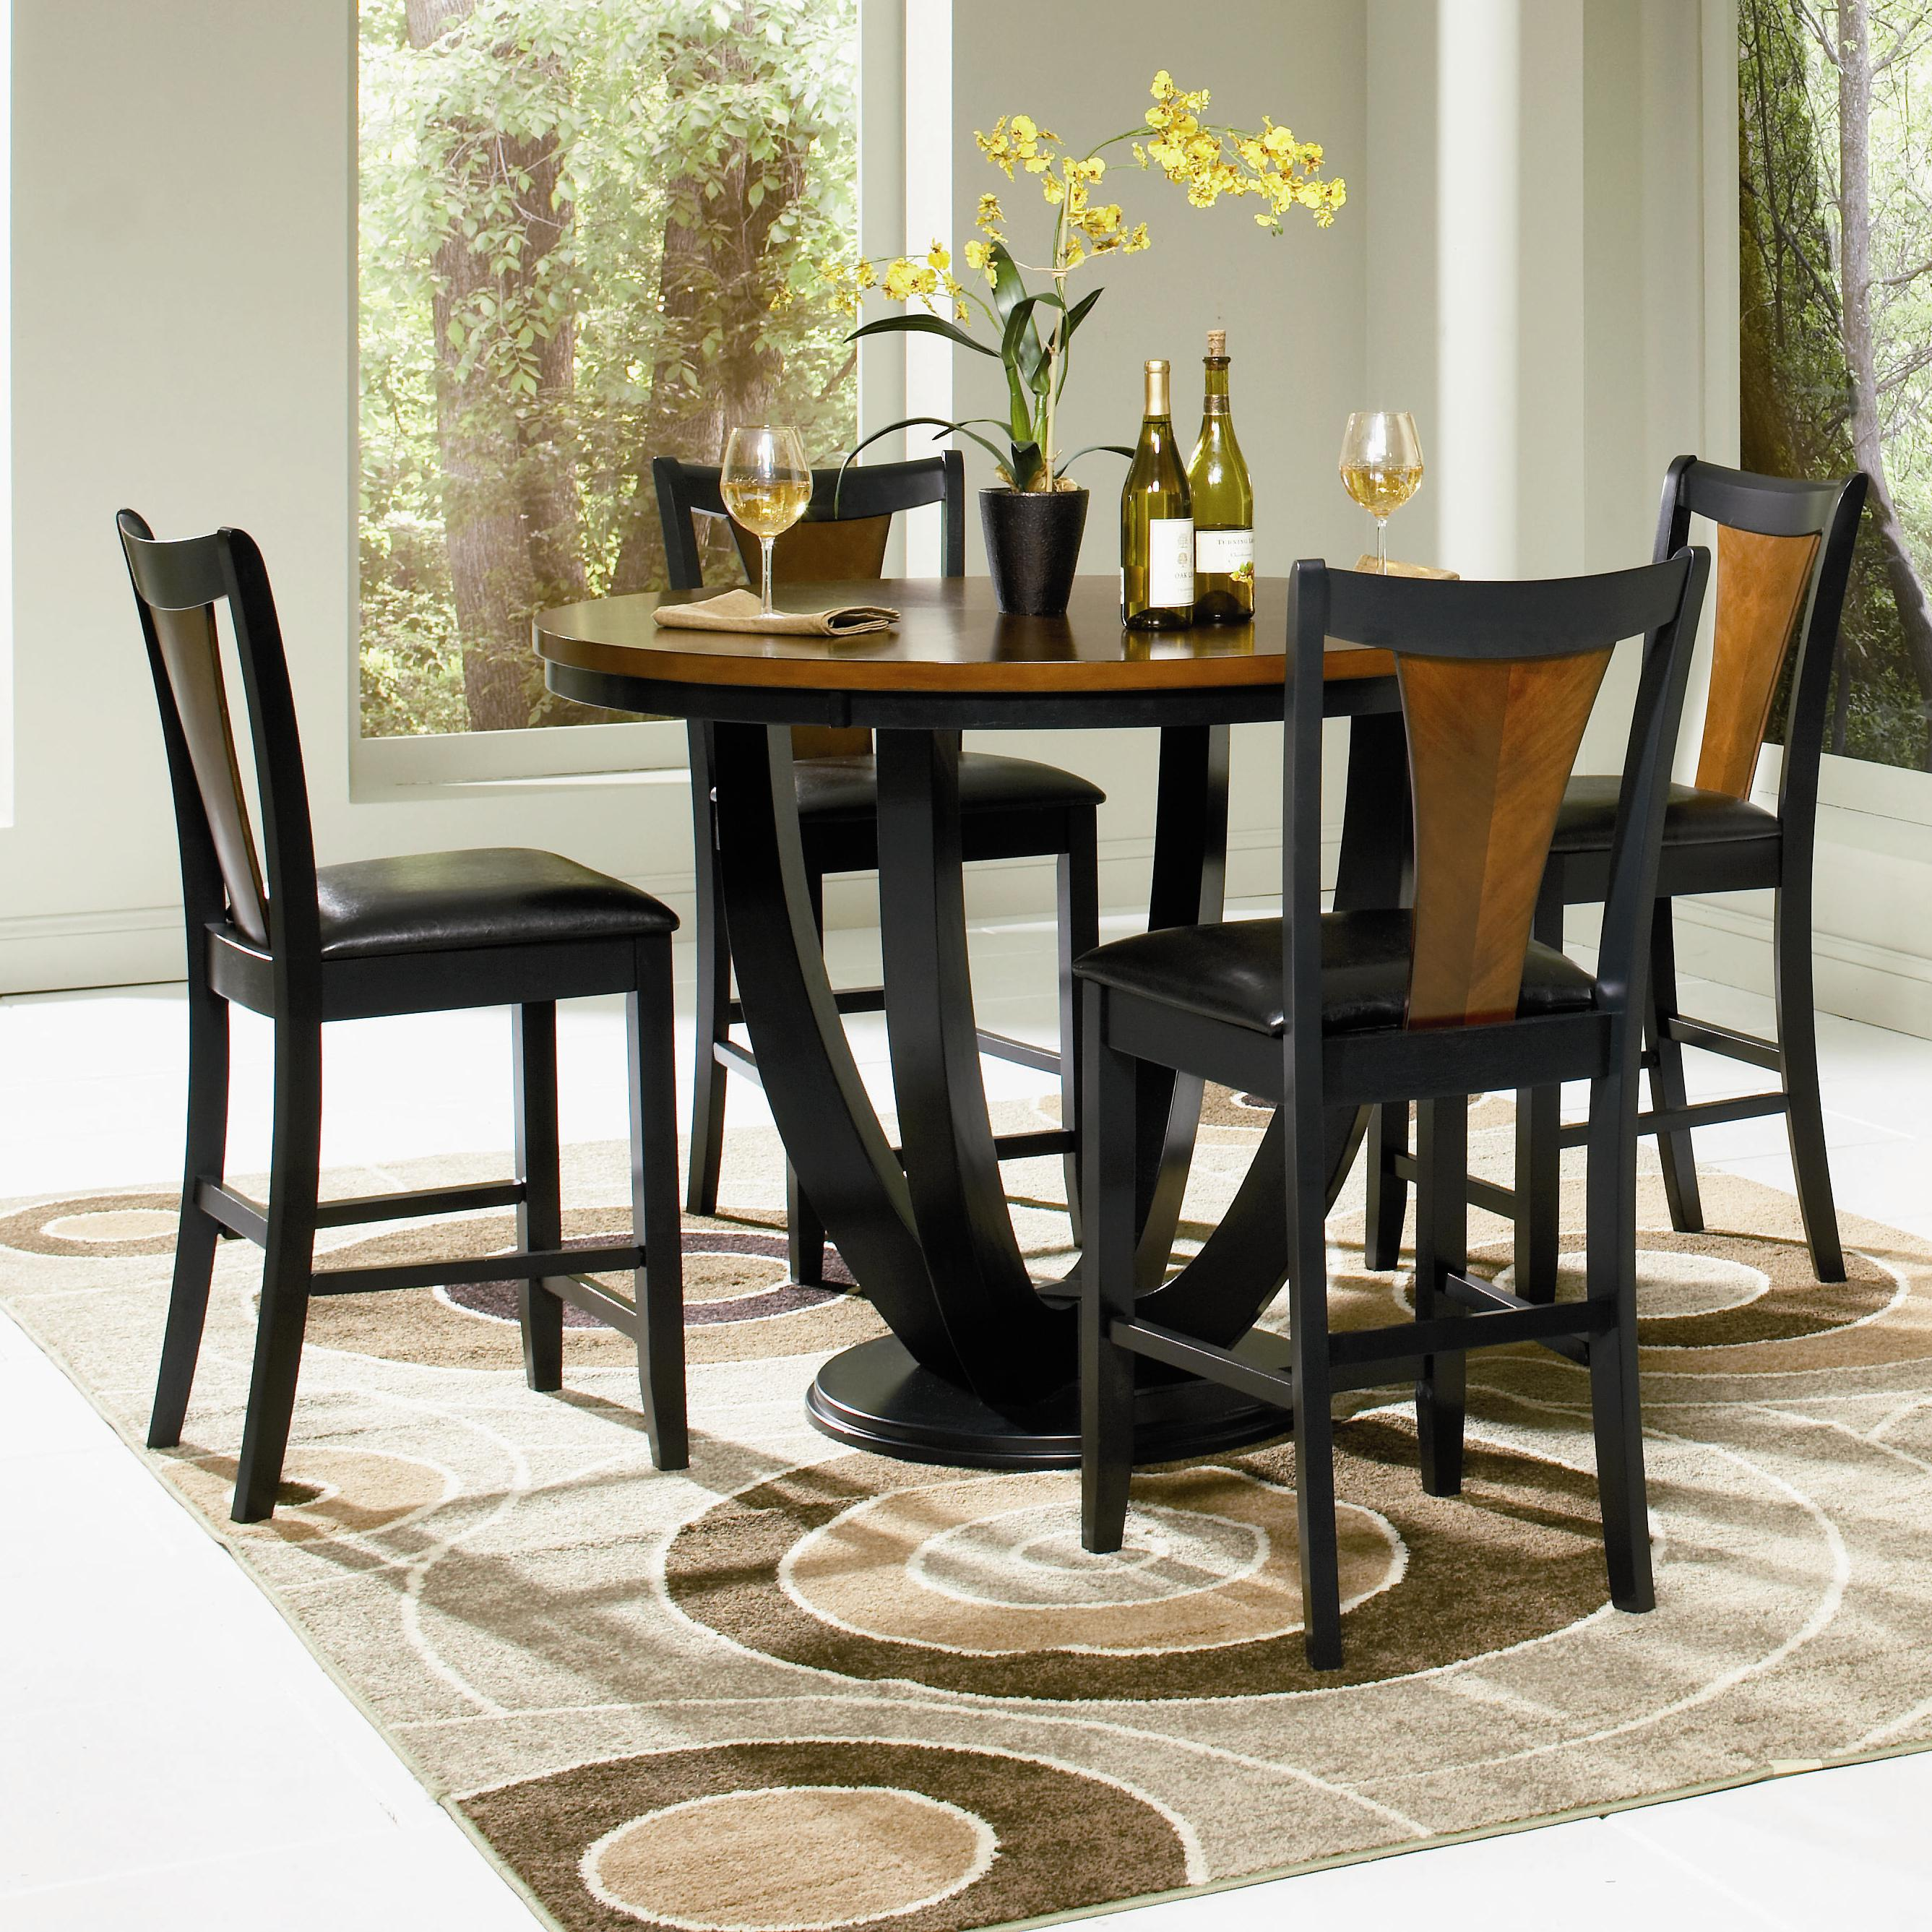 Coaster Boyer 5 Piece Counter Table and Chair Set - Item Number: 102098+4x9